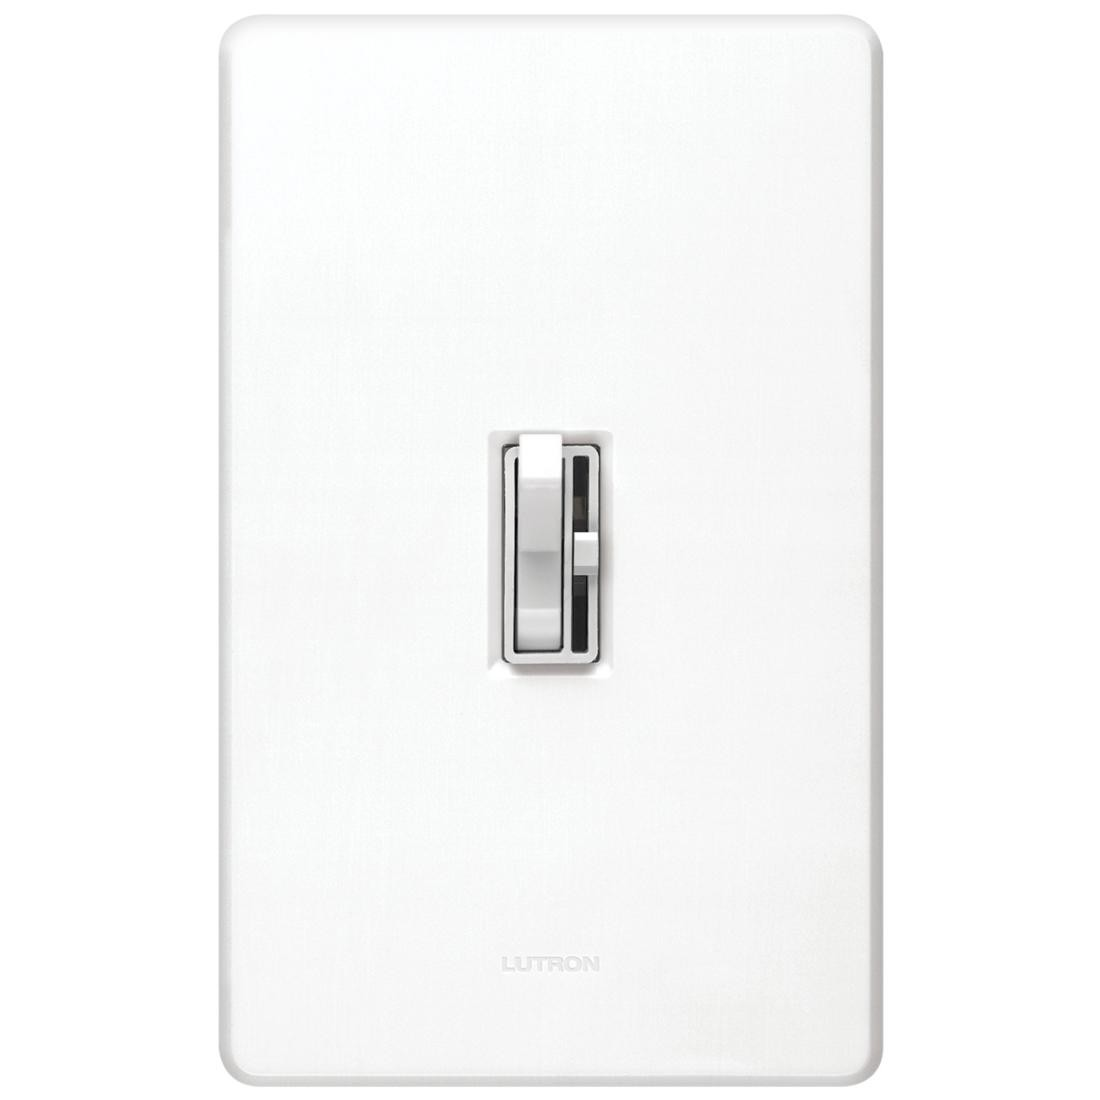 Lutron Ay 603p Wh Ariadni White Incandescent Toggle Dimmer 1